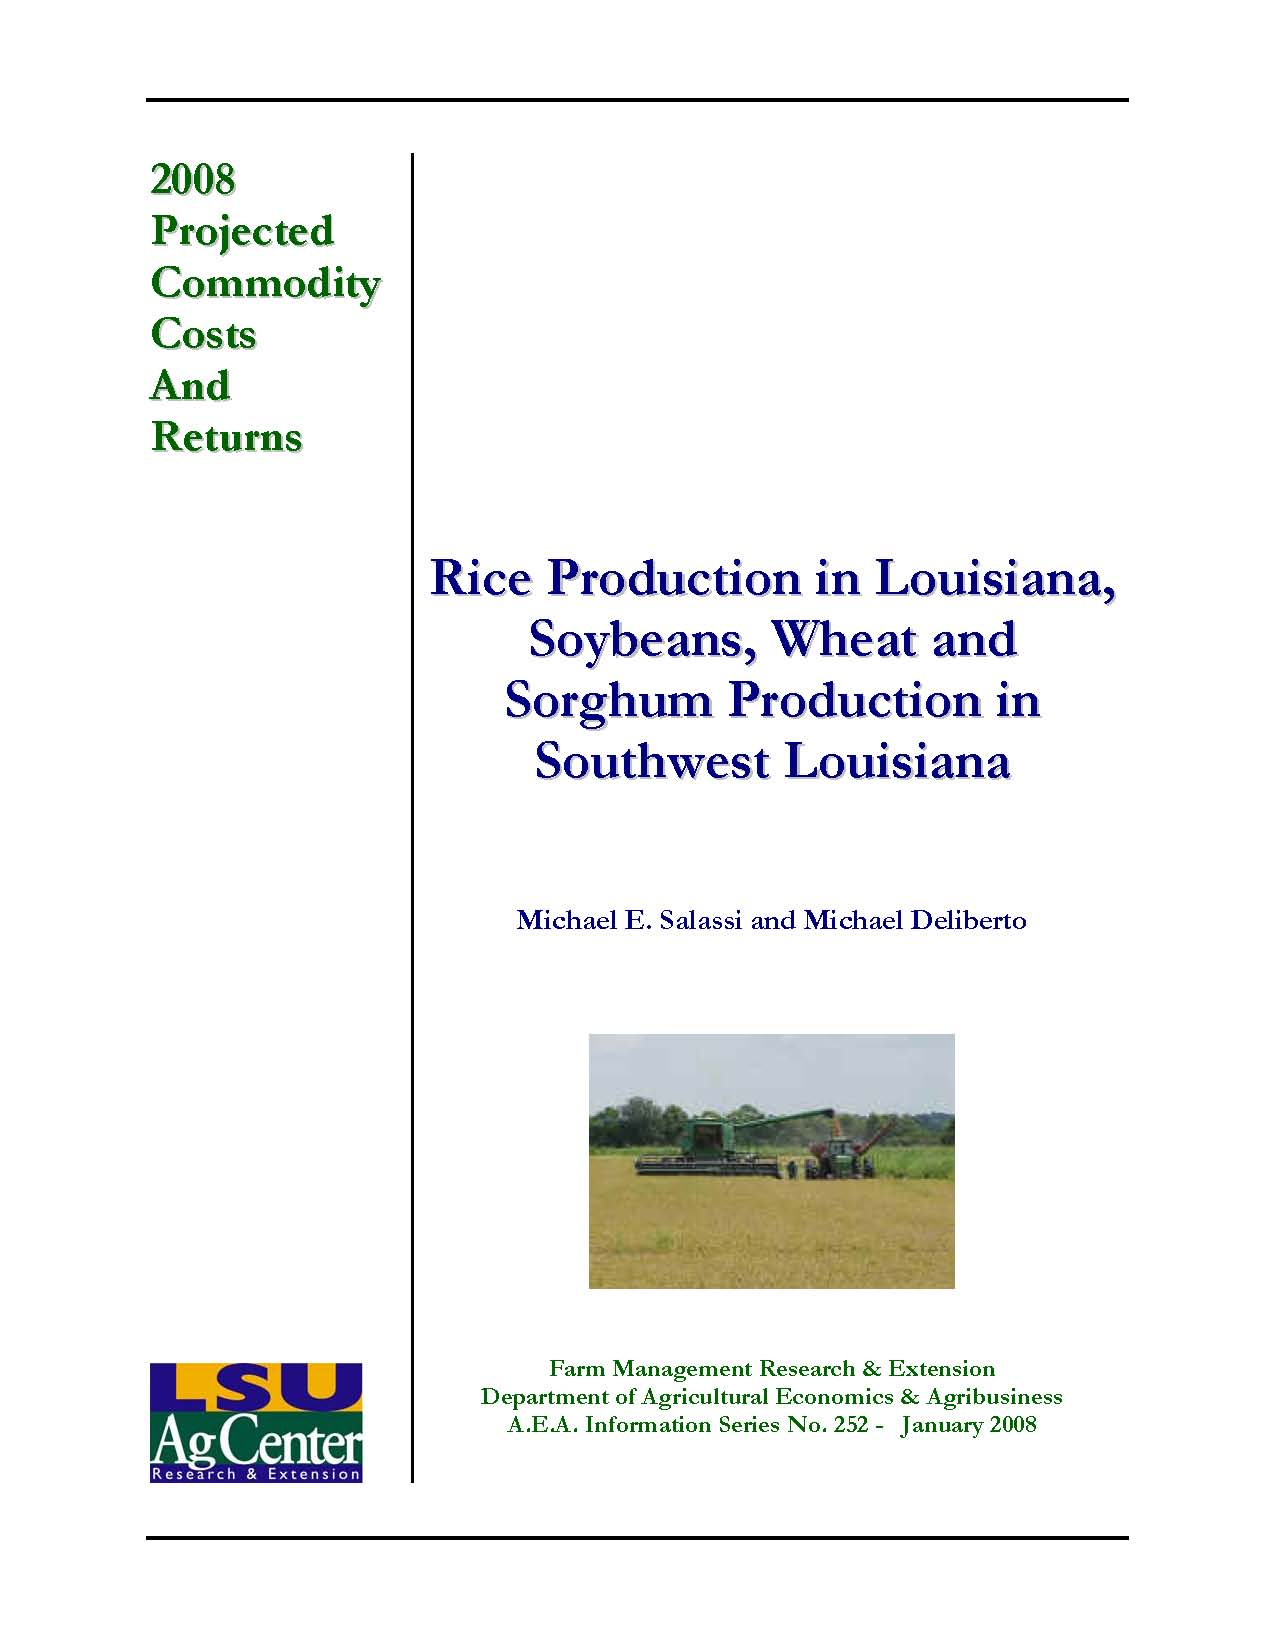 2008 Projected Louisiana Rice Production Costs